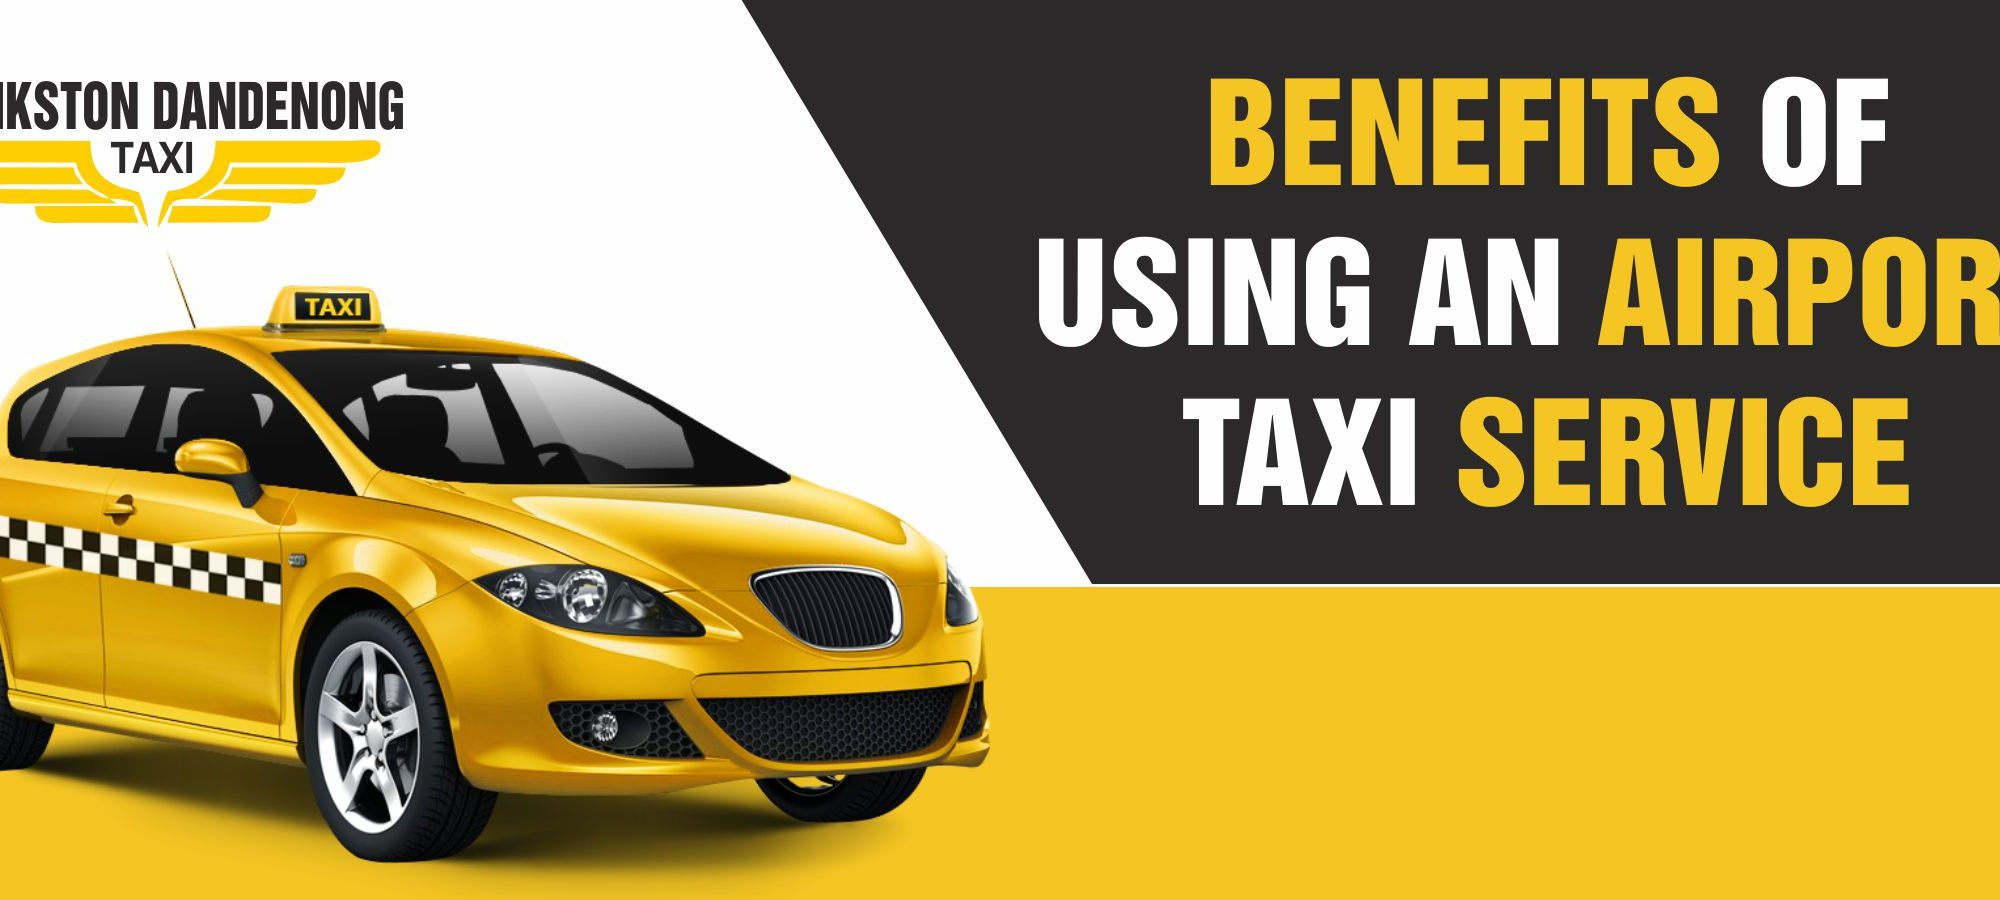 Benefits of Using an Airport Taxi Service - Banner 1